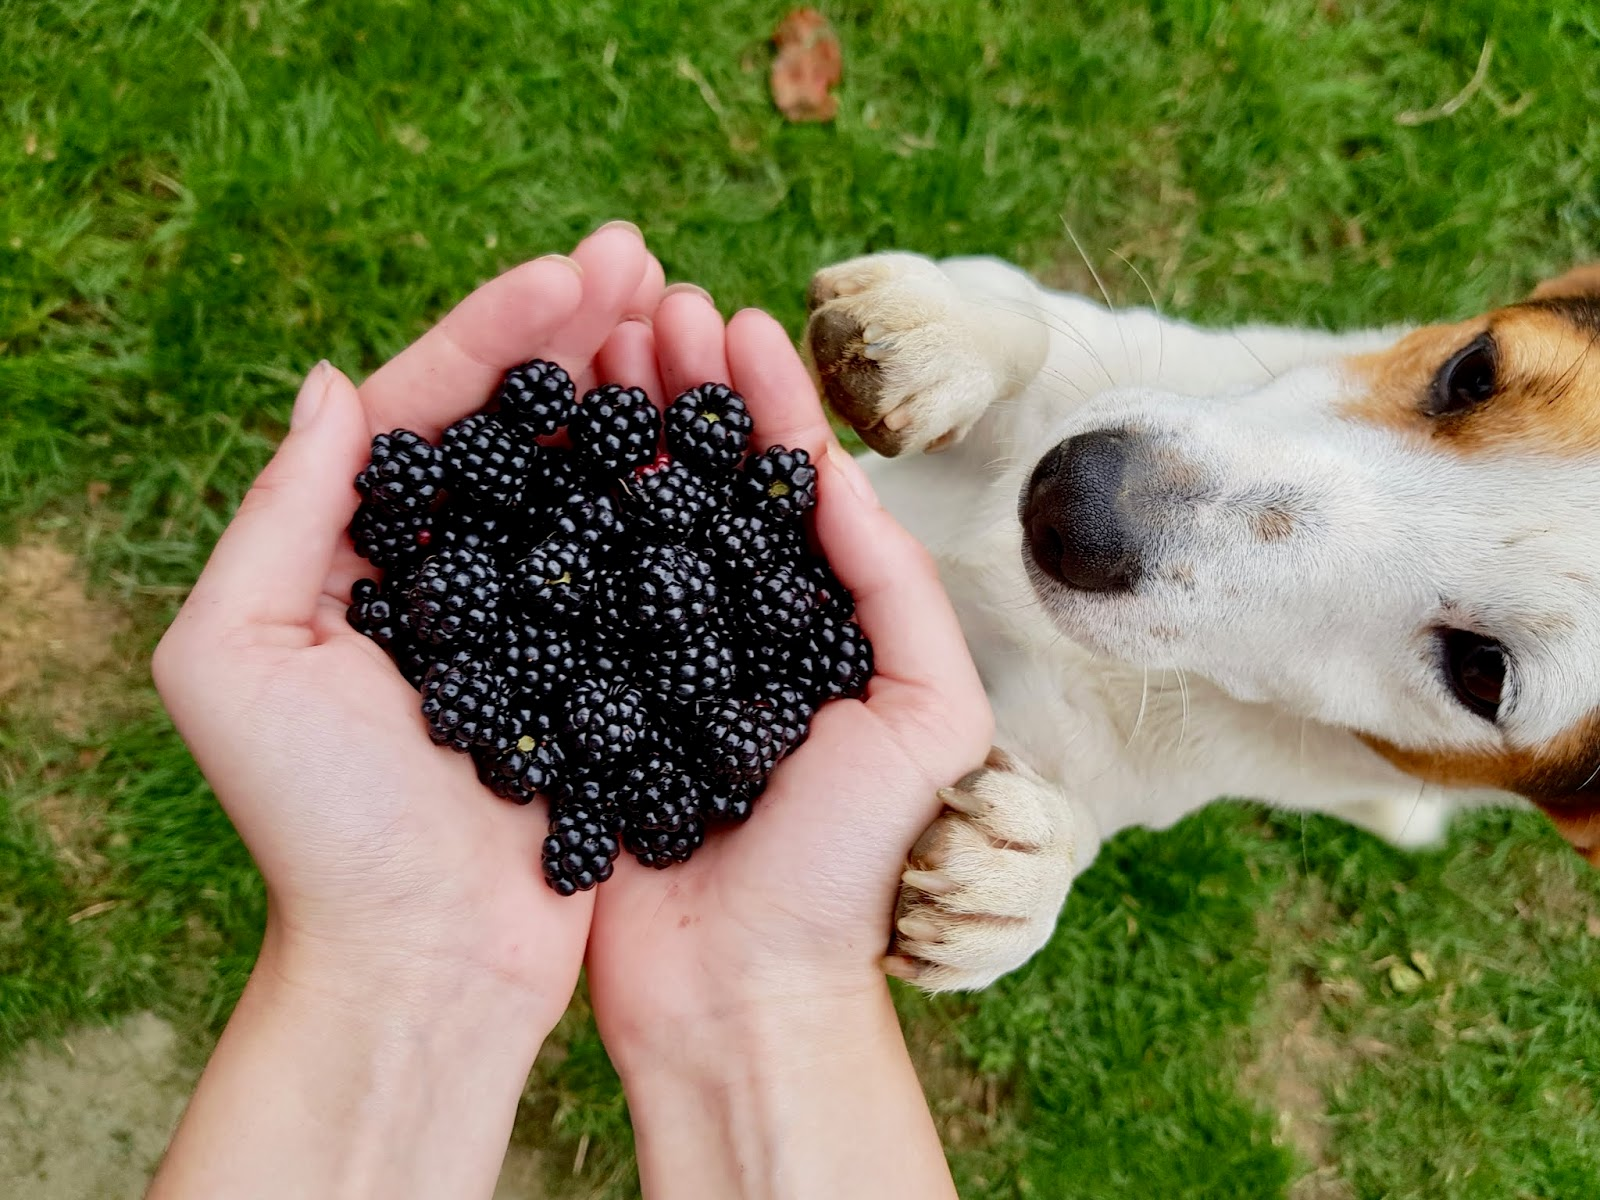 two hands cupping a portion of blackberries, a small dog jumping up to sniff at them